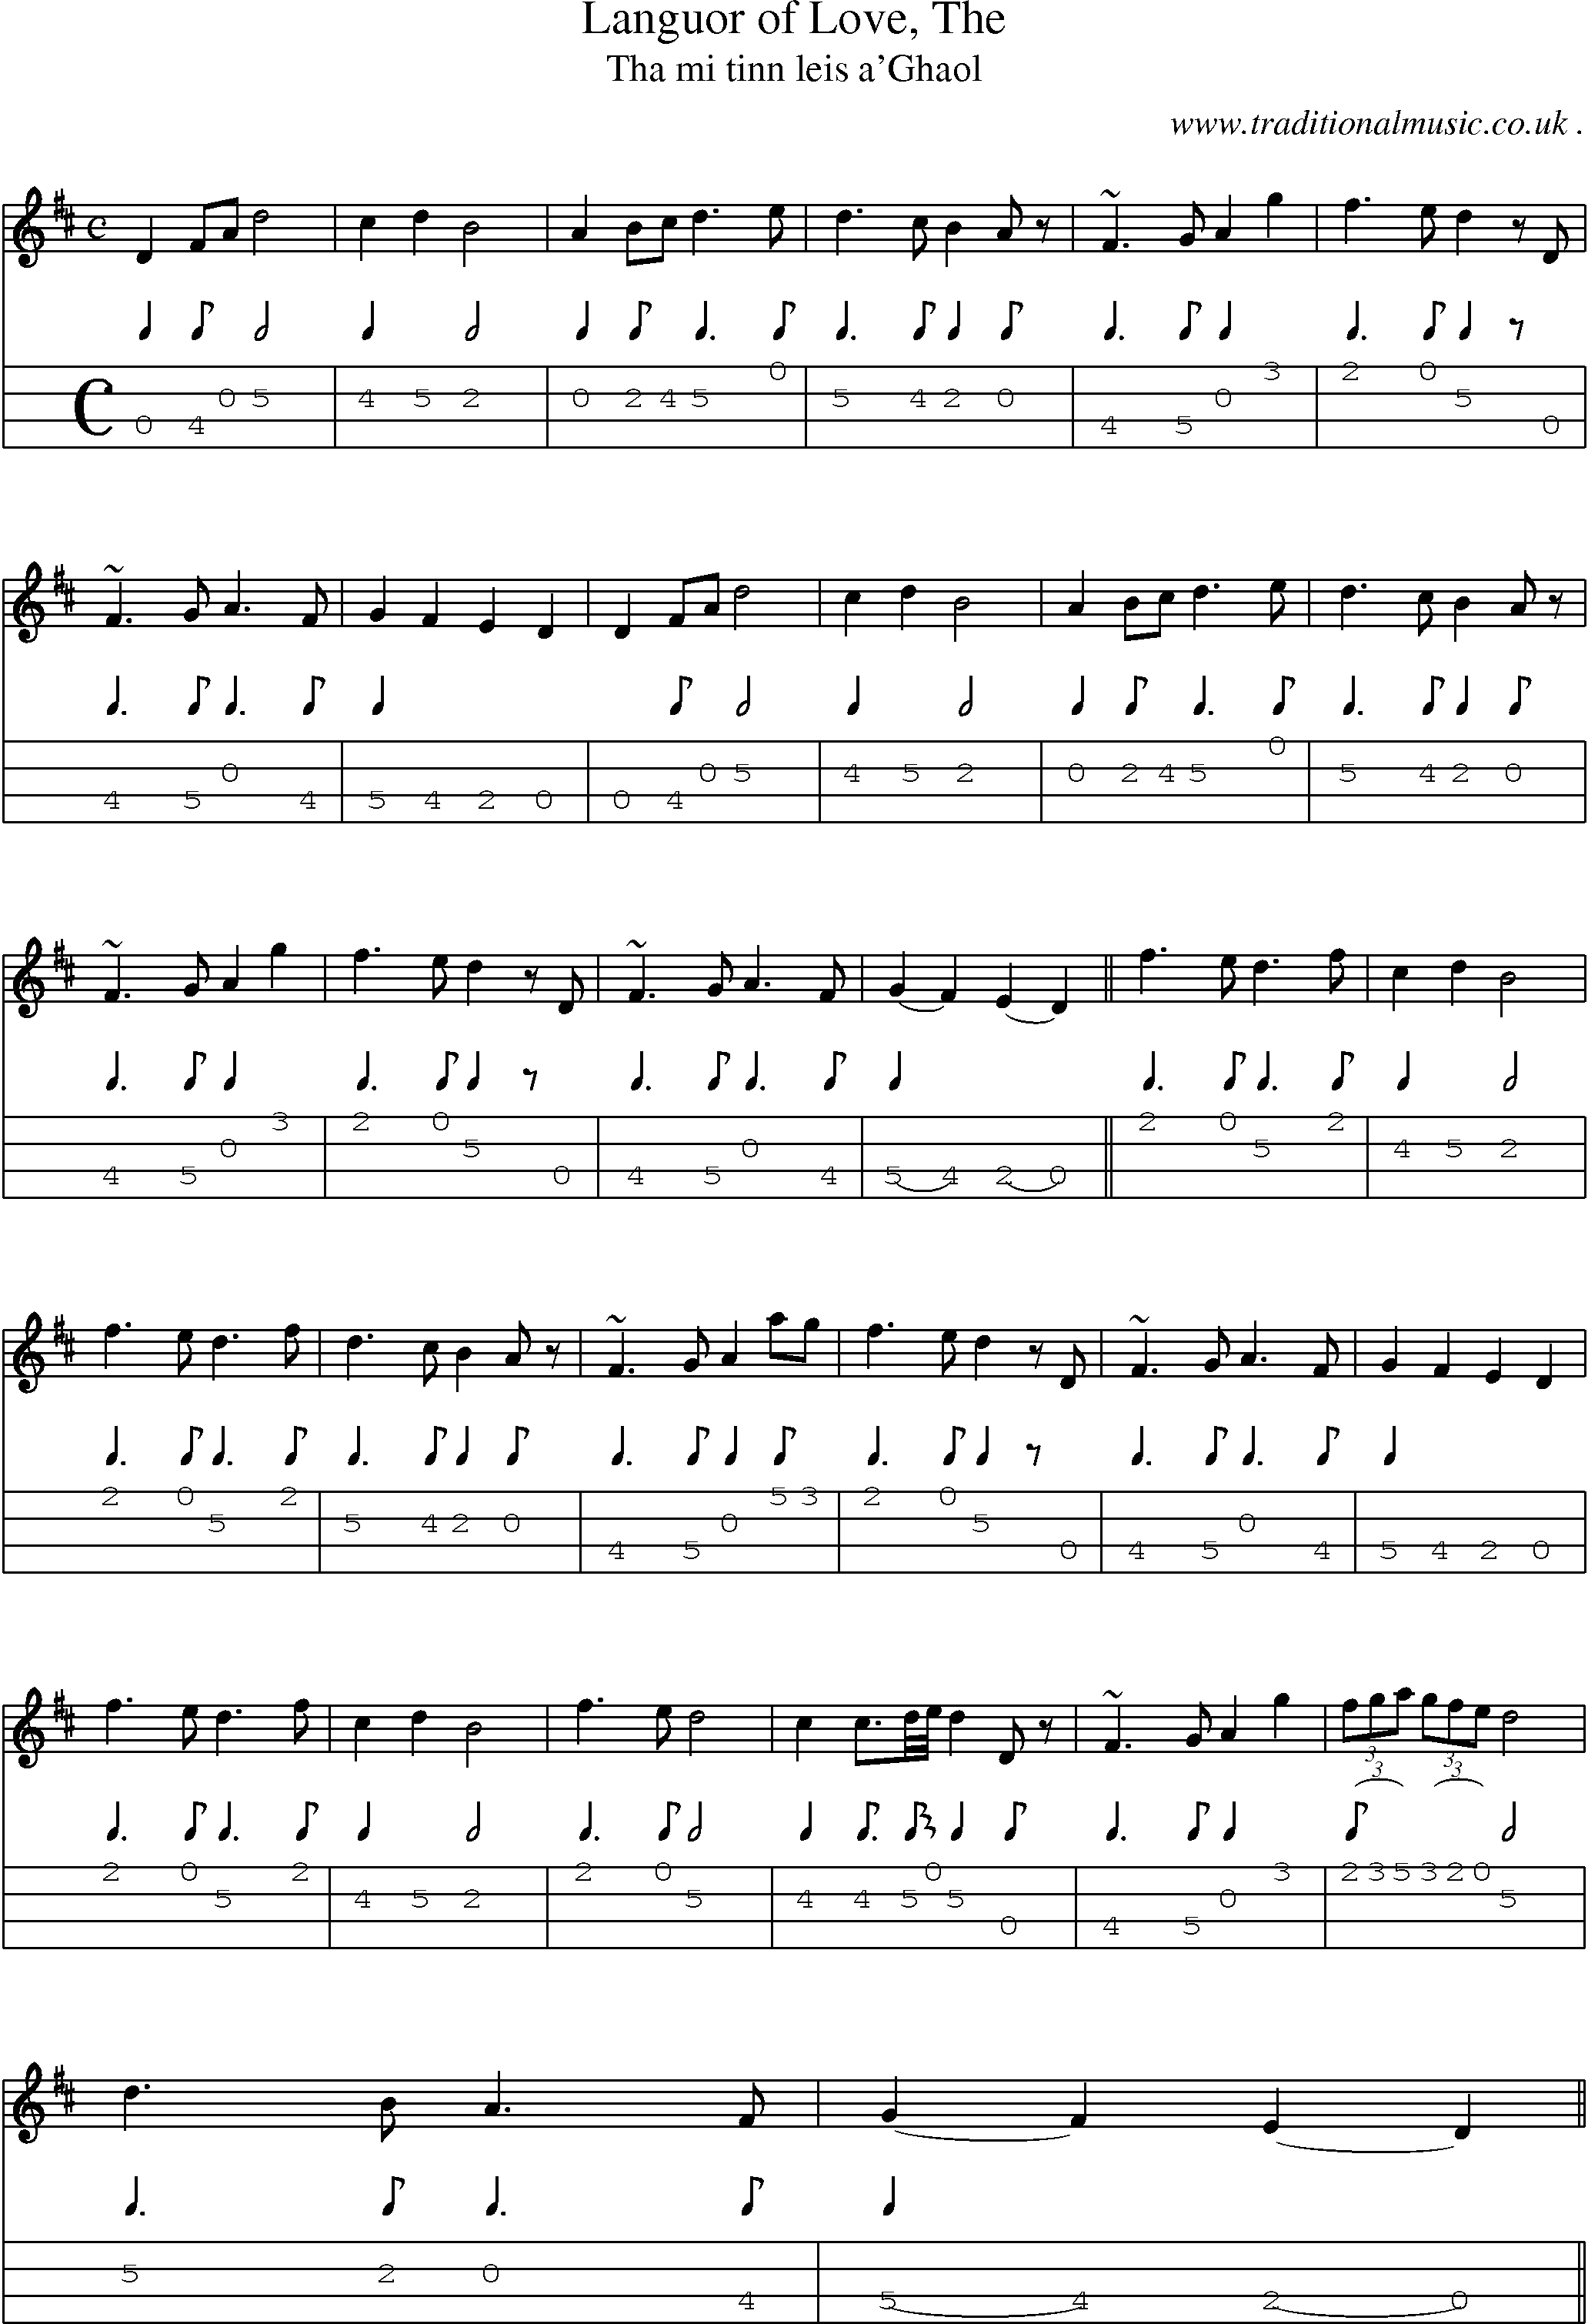 Scottish Tune, Sheetmusic, Midi, Mp3, Mandolin Tab and PDF for: Languor Of Love The